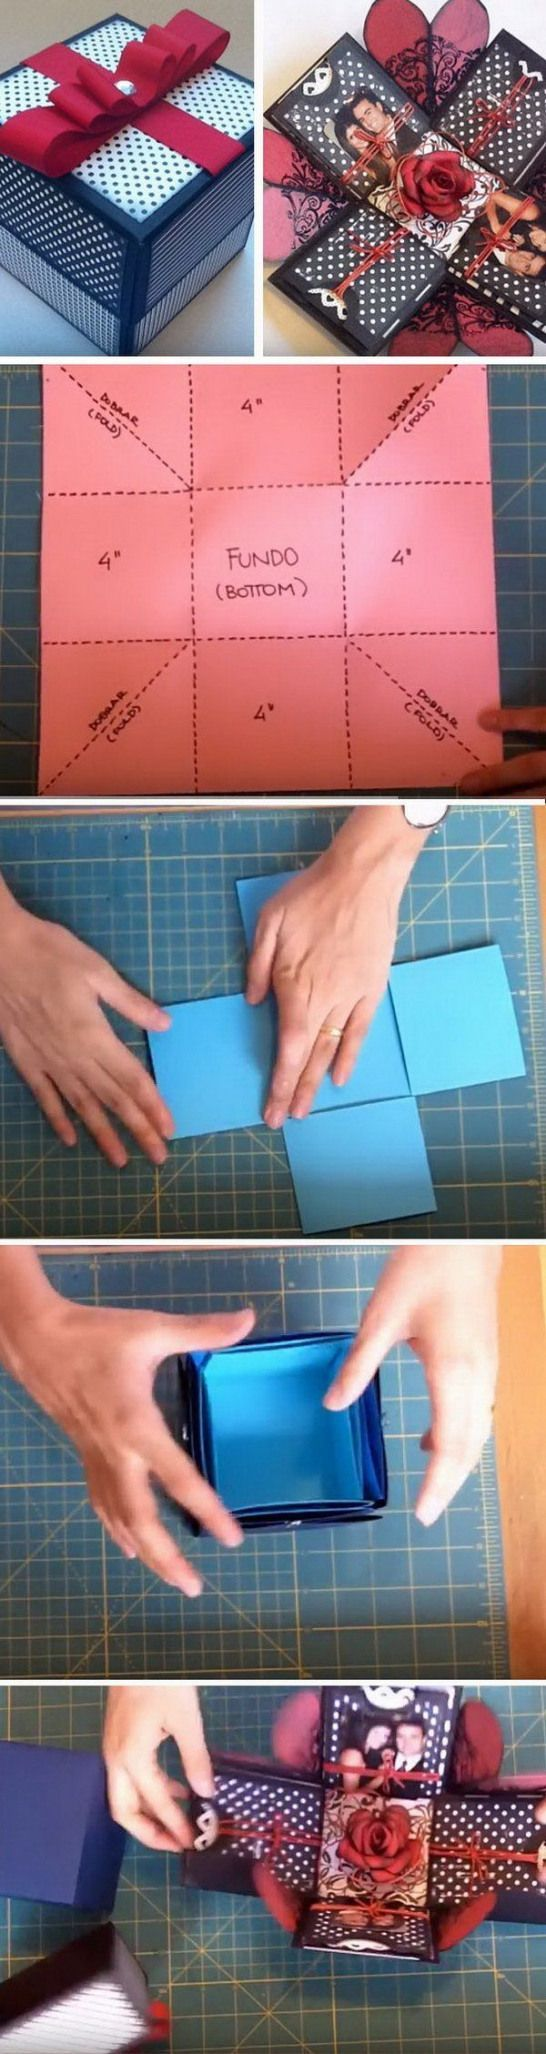 DIY Explosion Gift Box. Explosion gift boxes are the latest trend in do-it-yours…,  #Box #b…